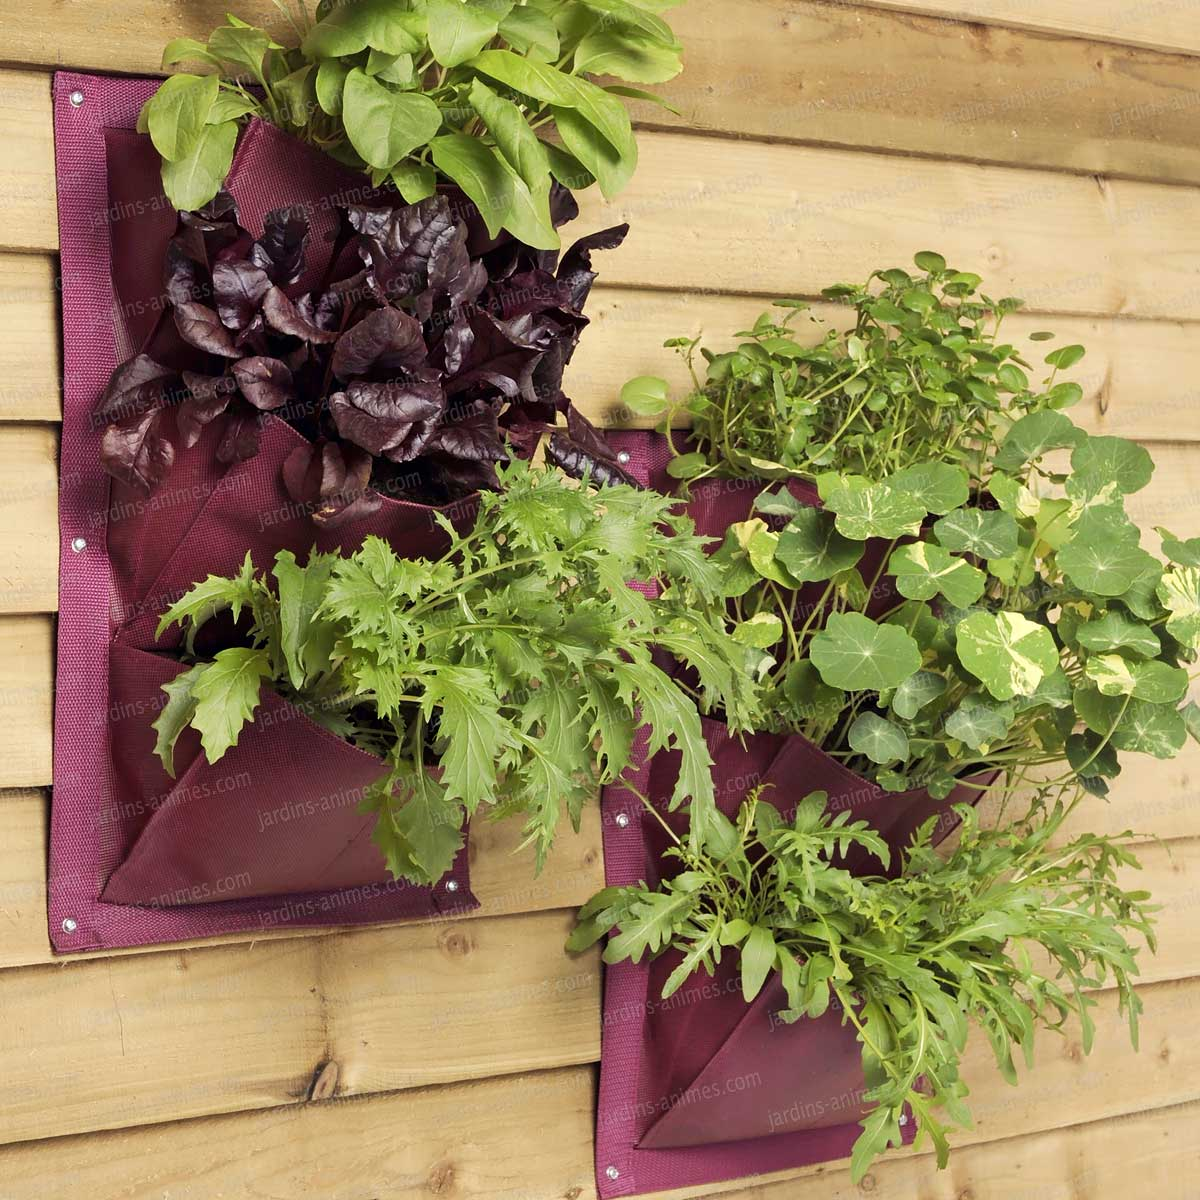 jardin vertical verti plant 3 poches pour salades aromatiques et petites plantes lot de 2 pots. Black Bedroom Furniture Sets. Home Design Ideas